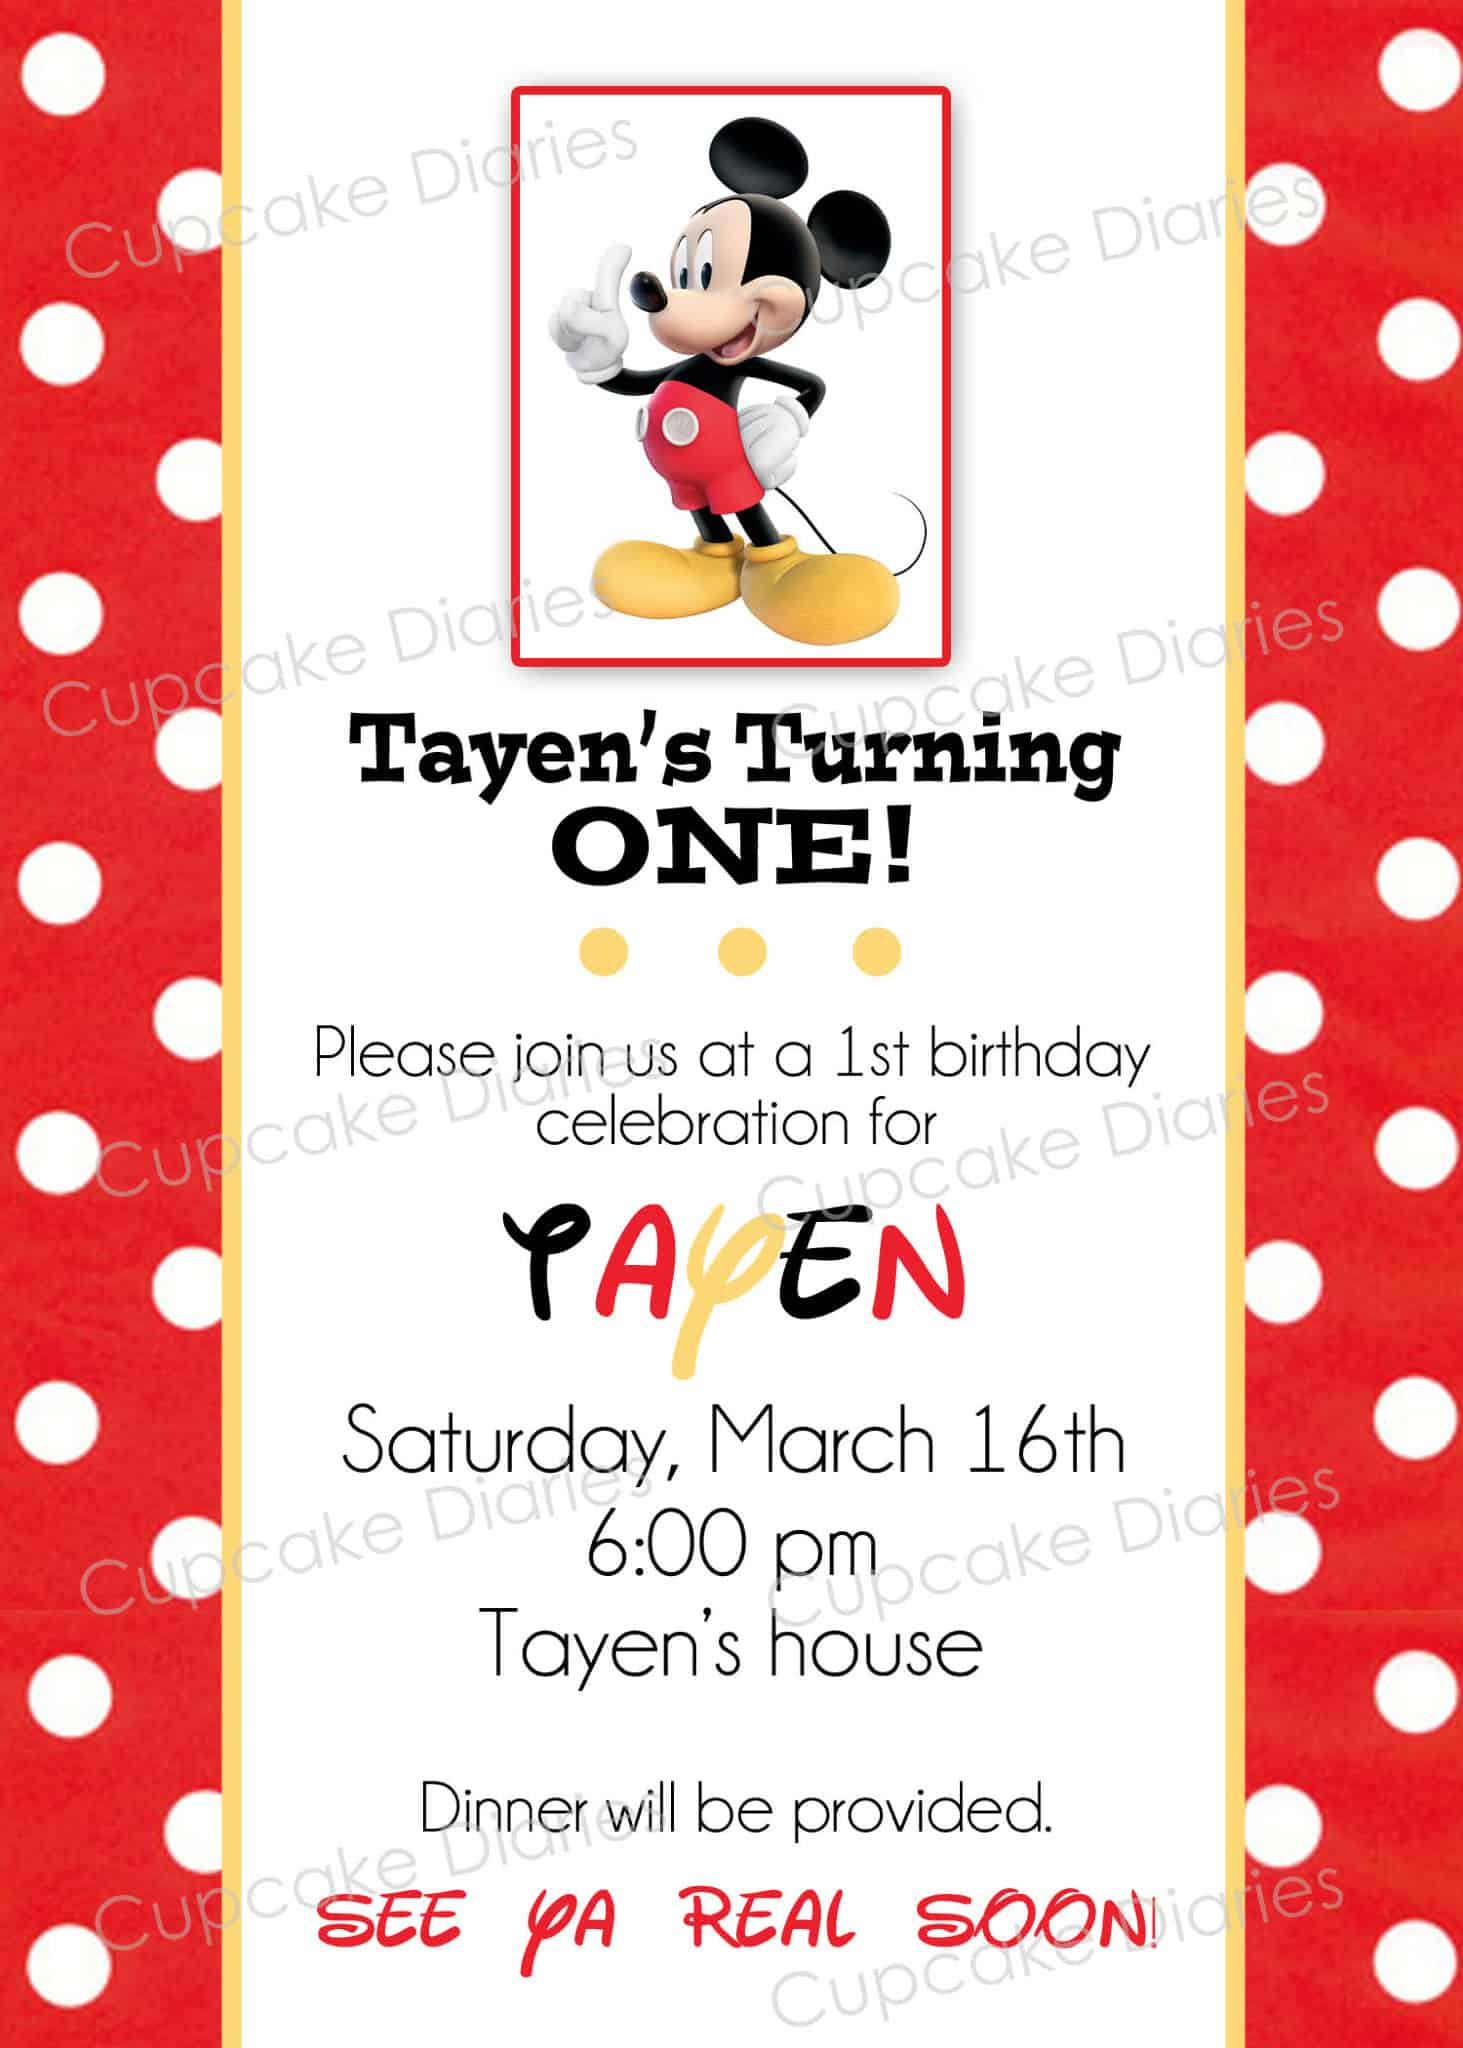 simple mickey mouse birthday party free subway art printable cupcake diaries